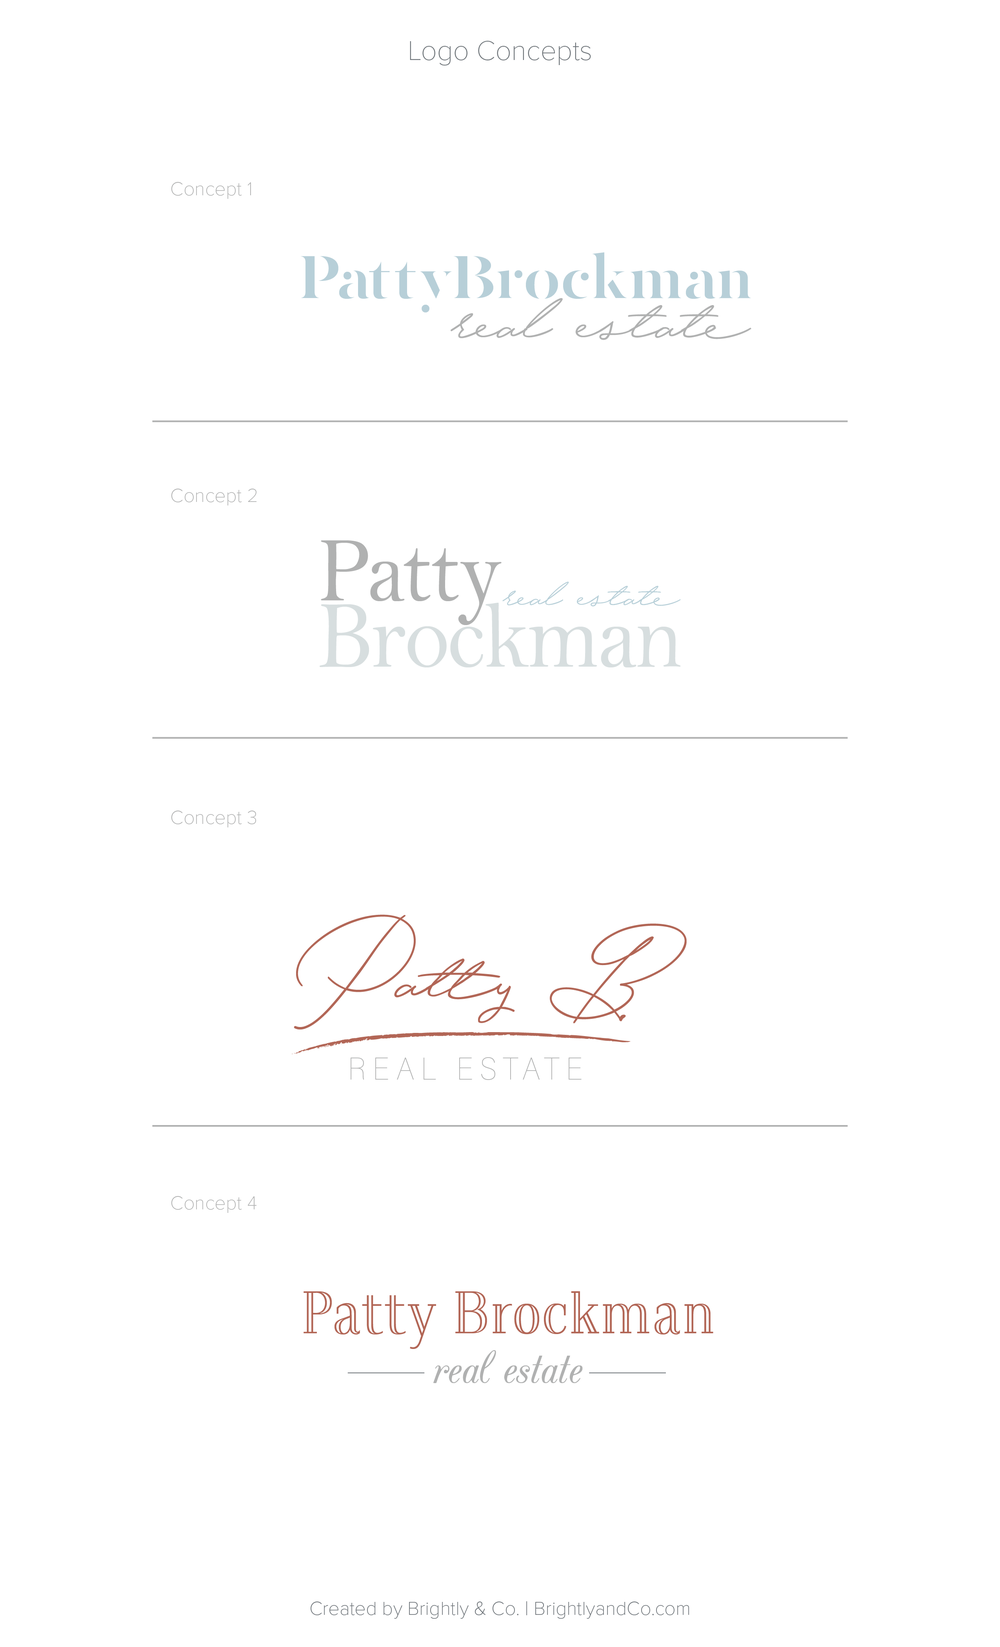 Patty Brockman Real Estate Brand Design (Logo Concepts) by Brightly & Co. | www.BrightlyandCo.com